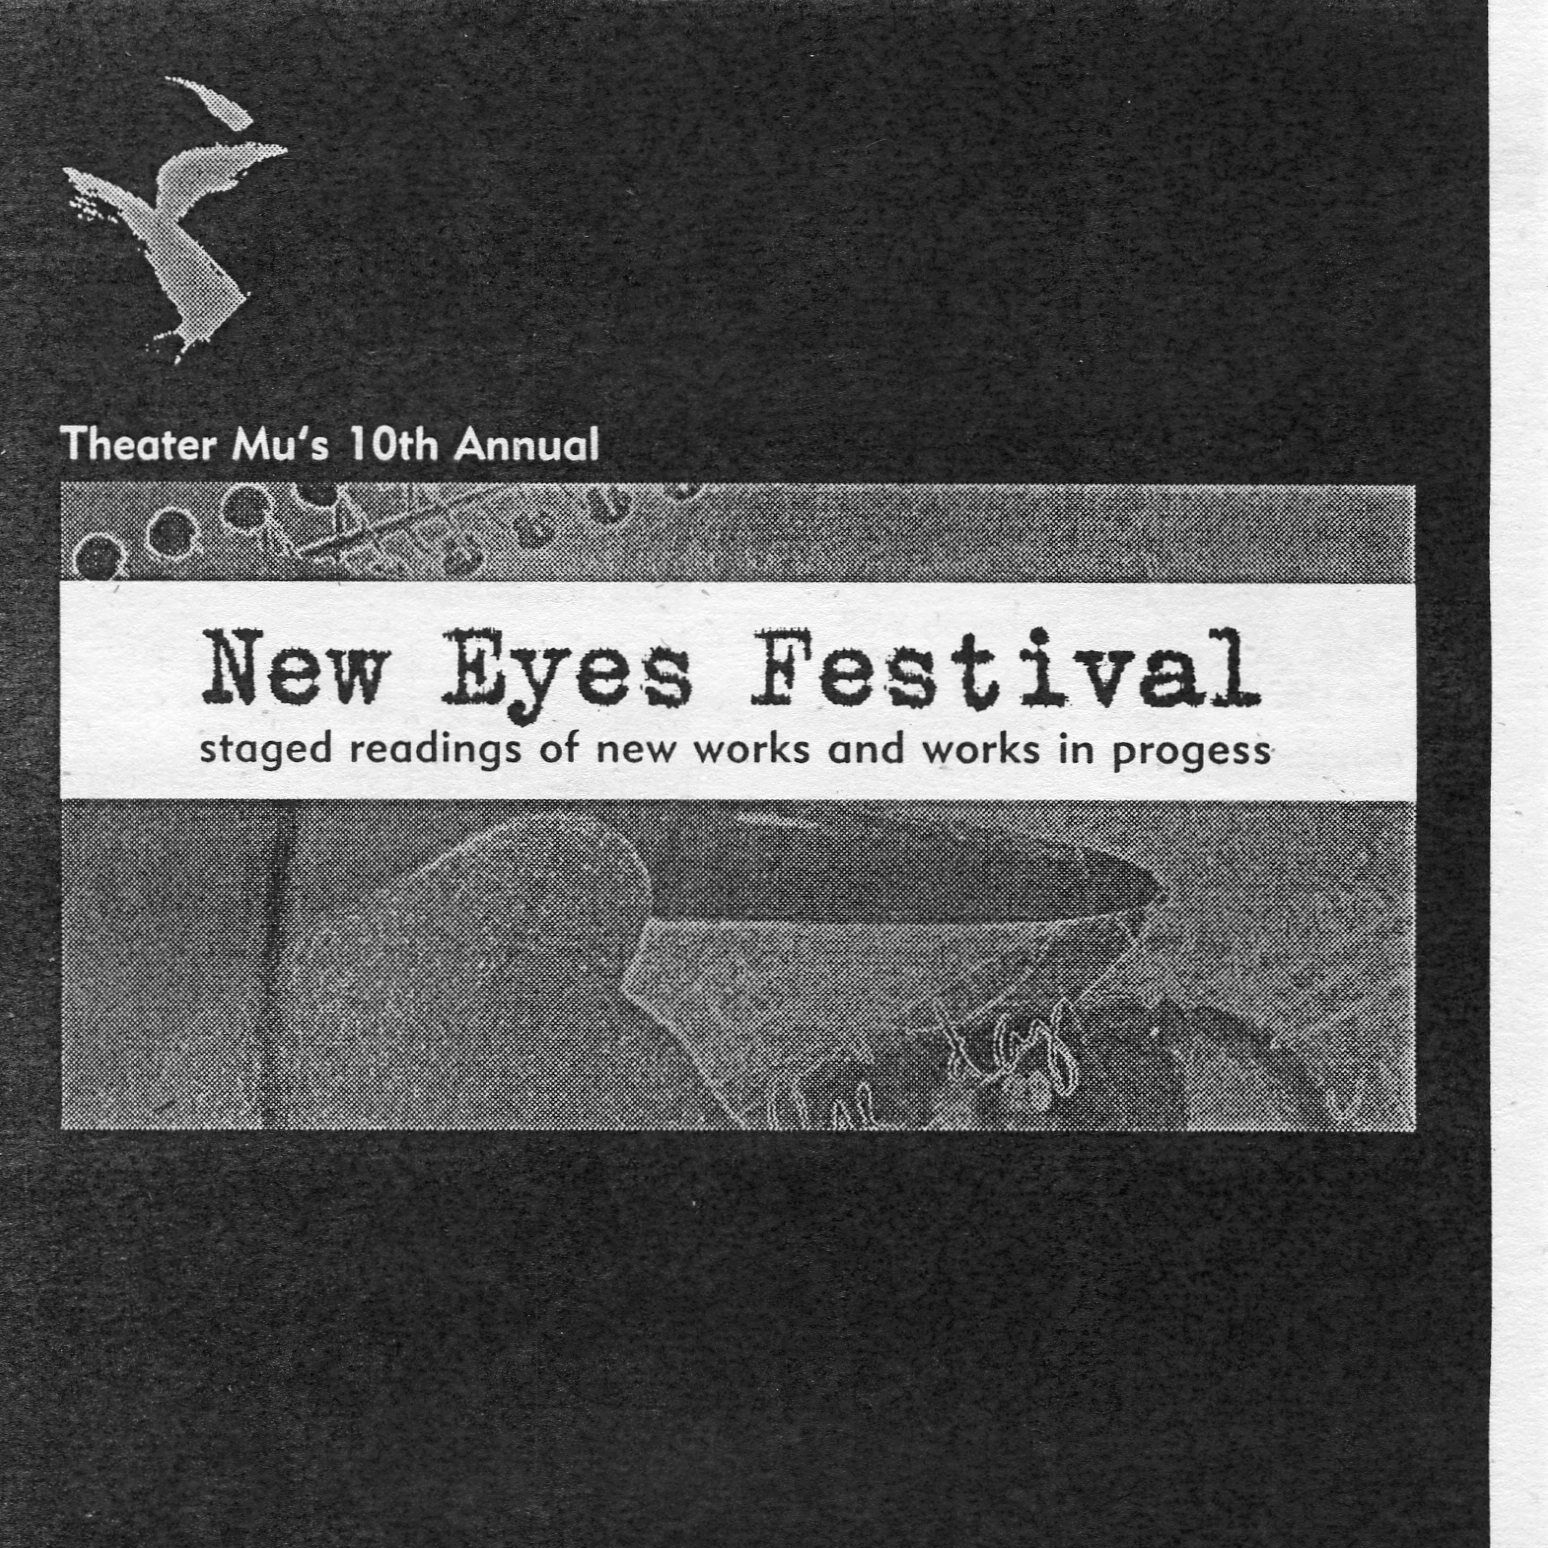 THE NEW EYES FESTIVAL 2002 - June 27th-30th, 2002